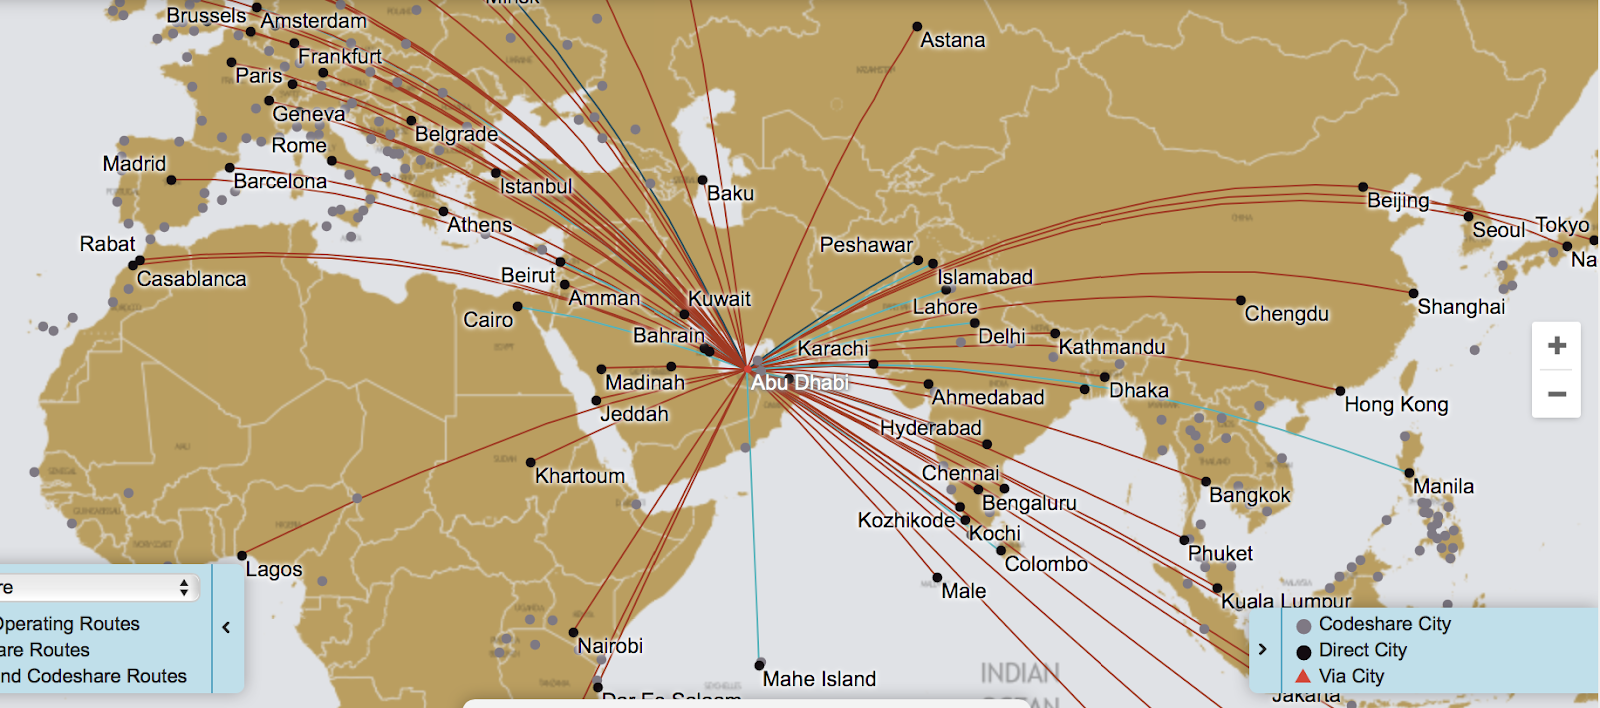 etihad s route map from its website